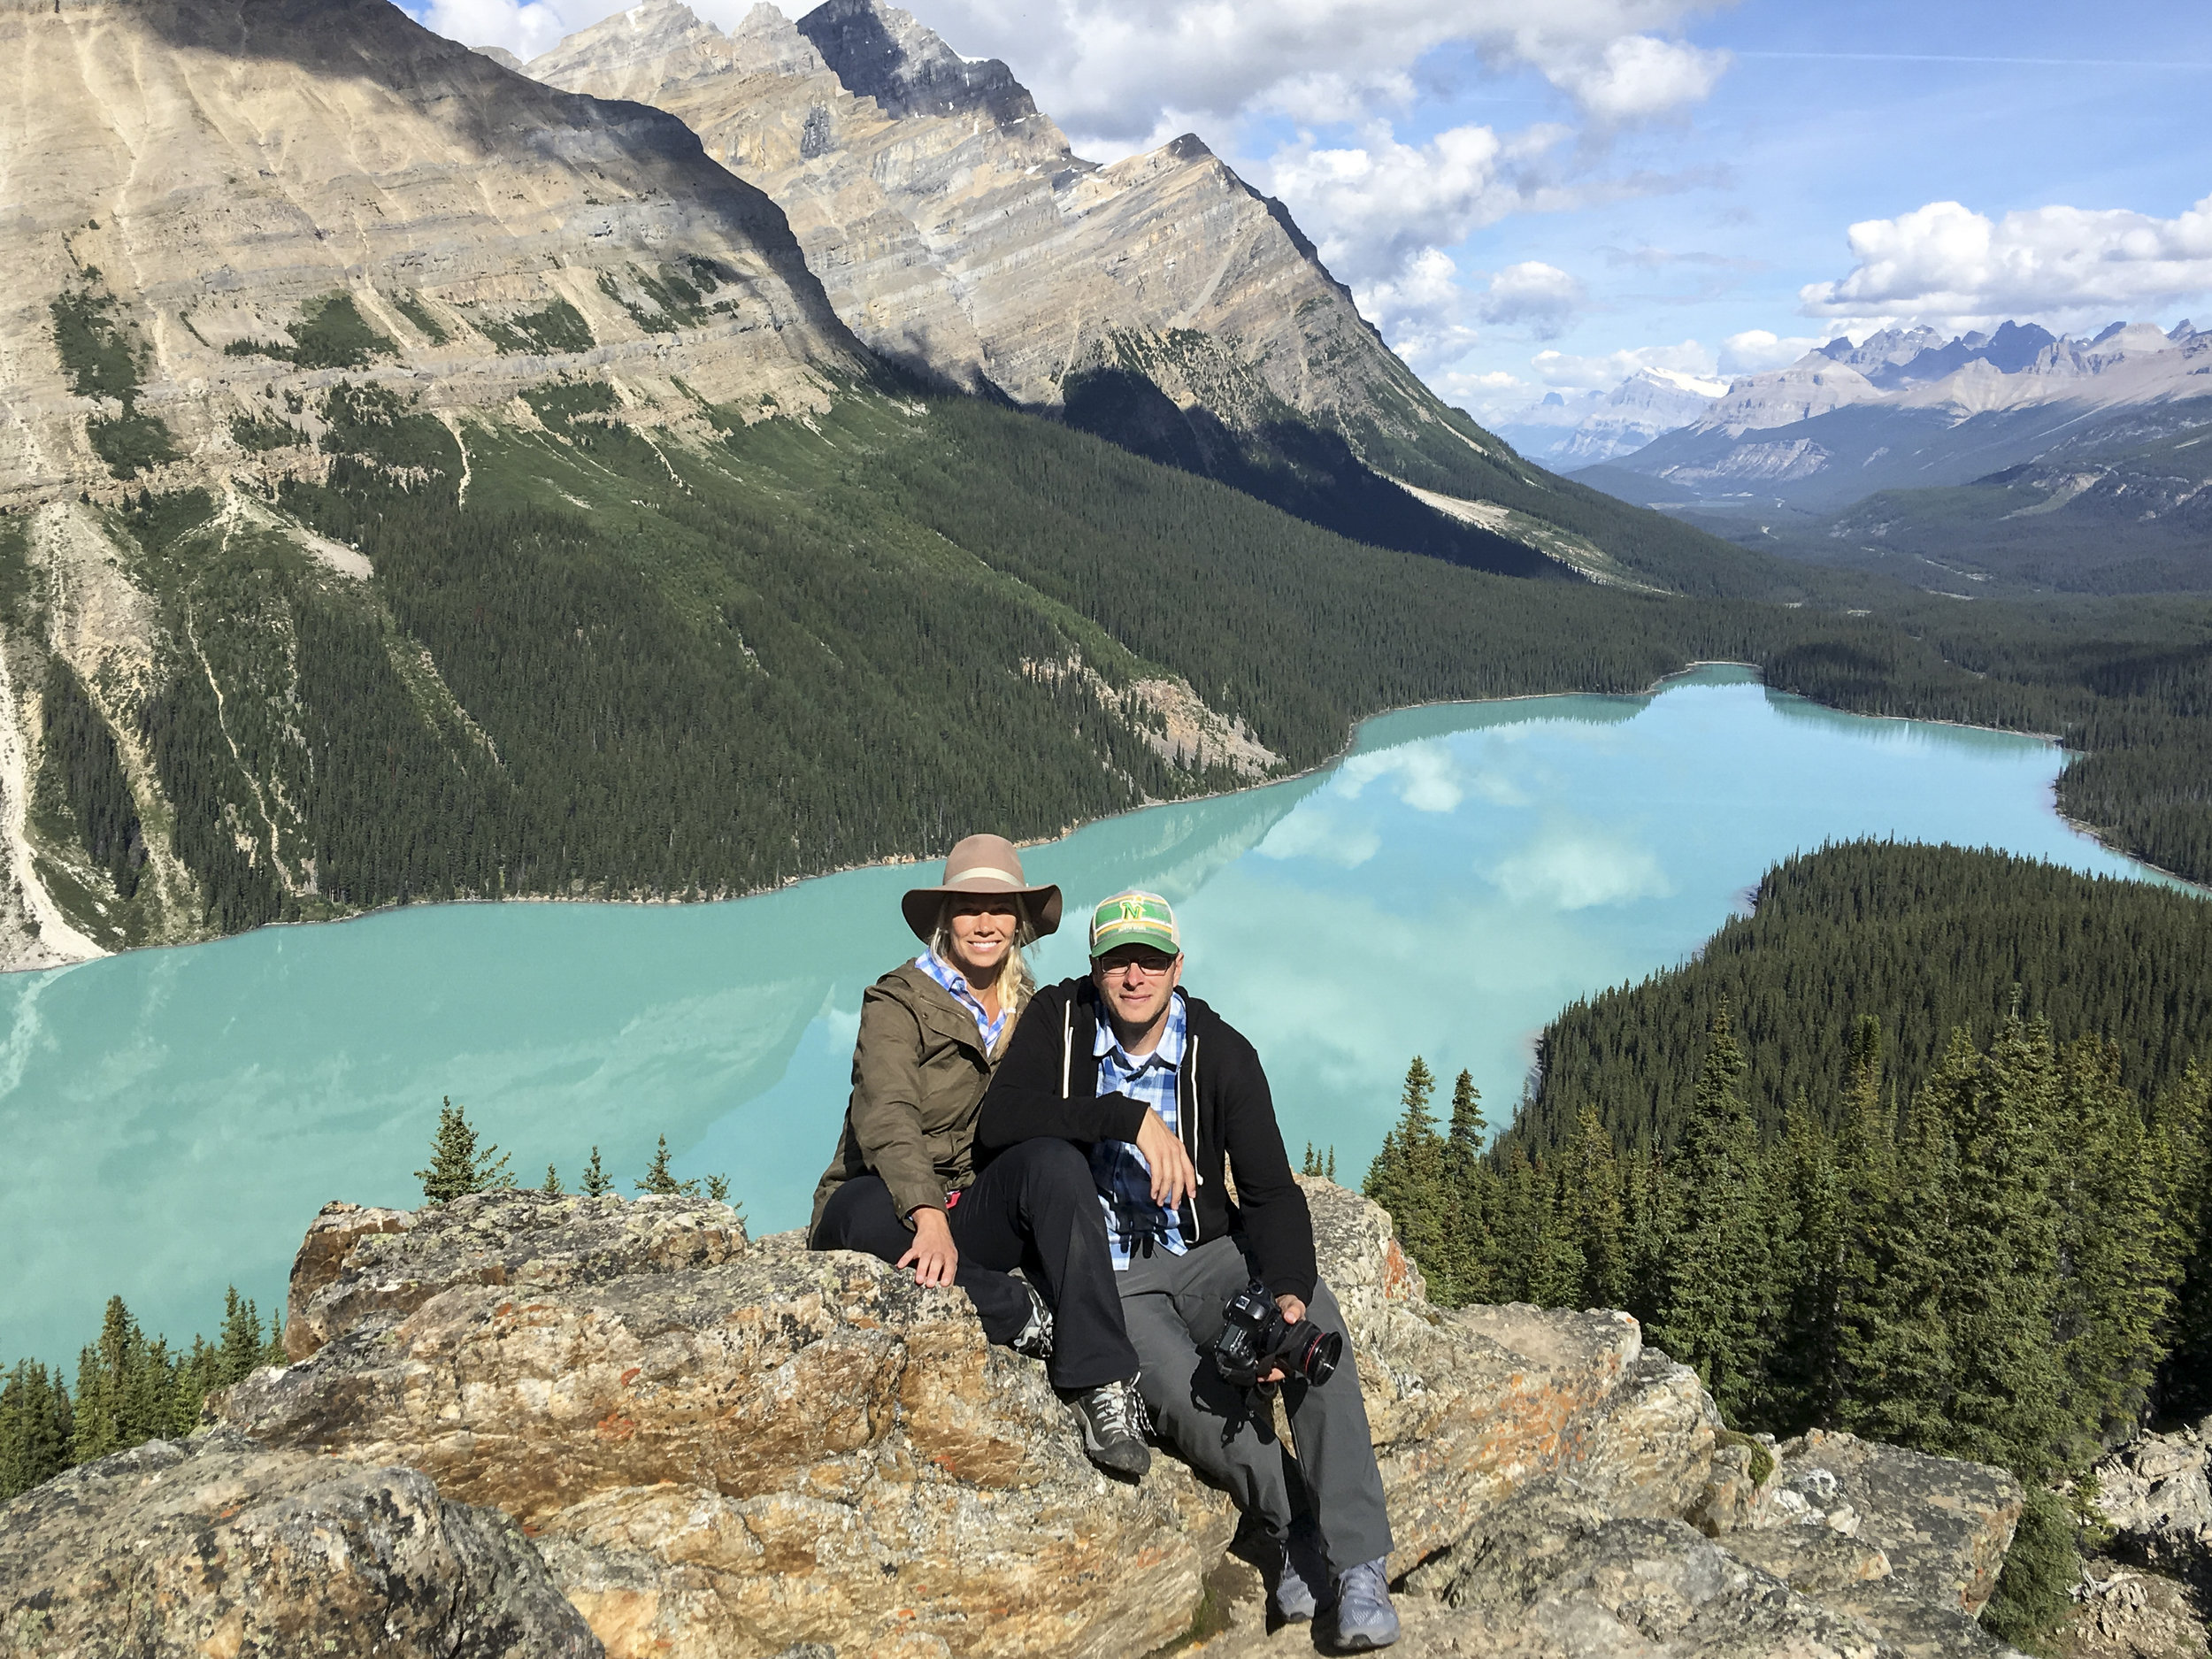 Jenn and Tim during their shoot in Banff for National Geographic Traveler.